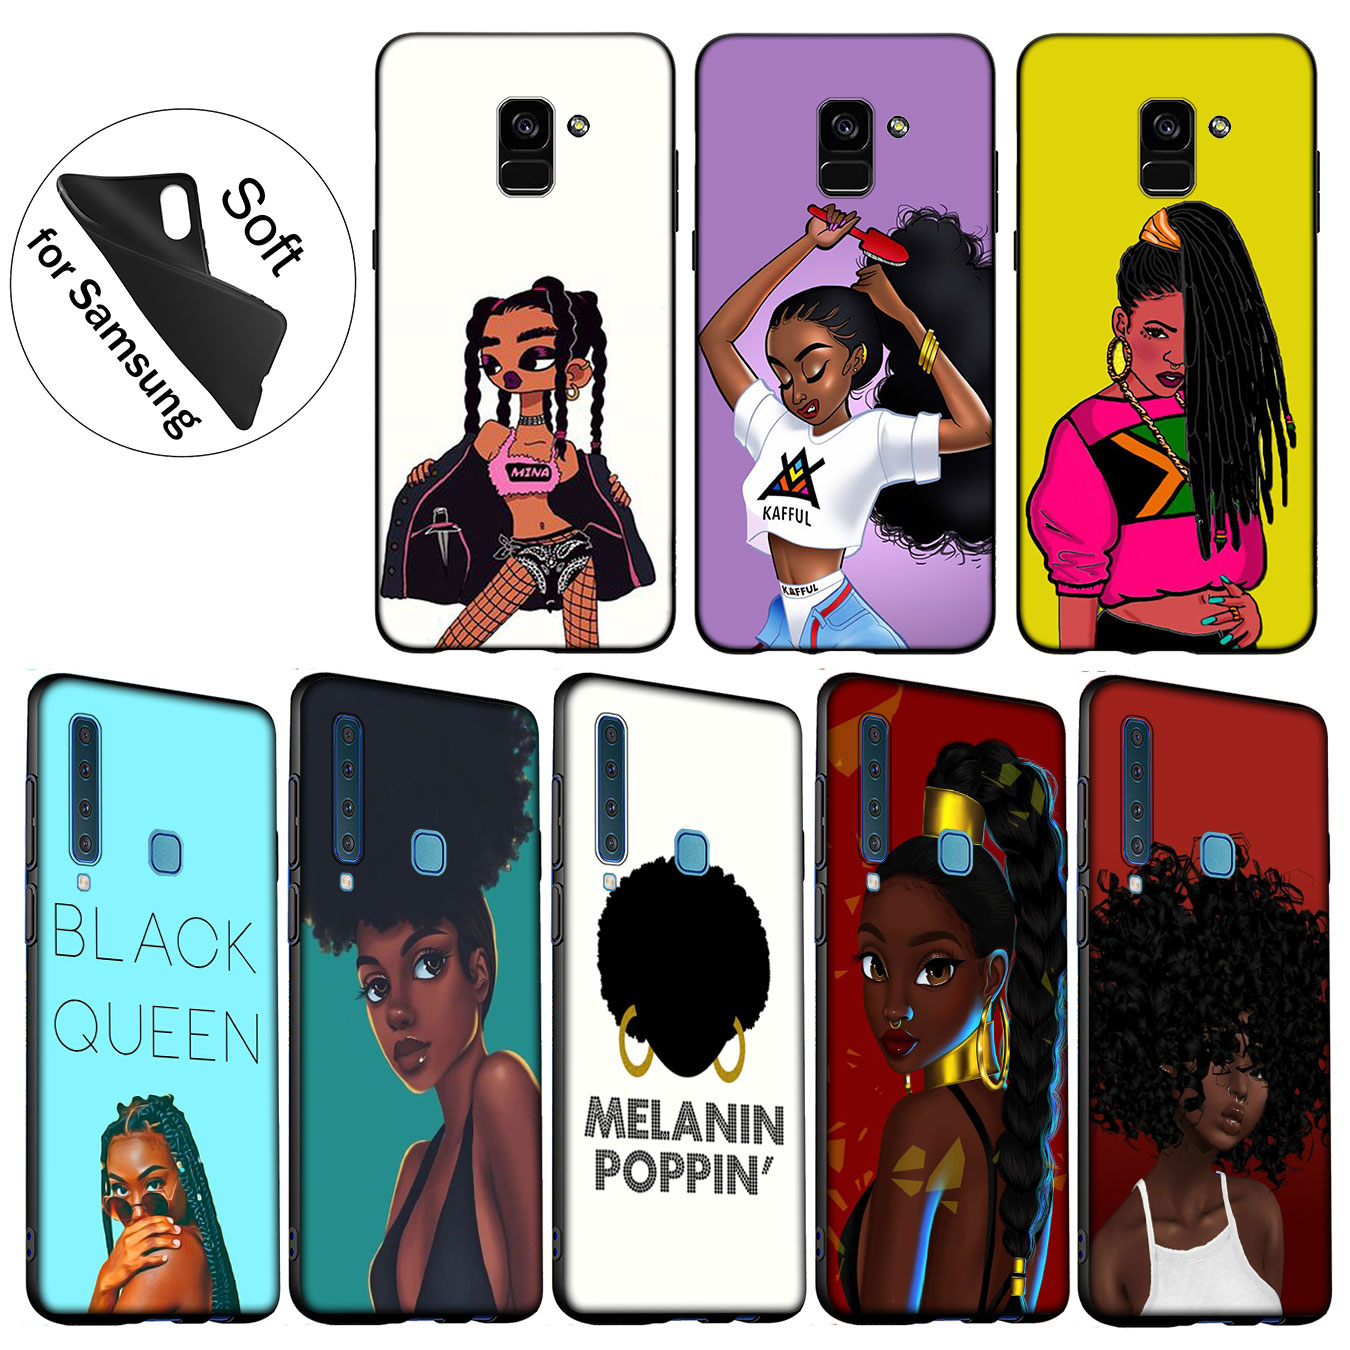 Reasonable Iyicao New Personalized Melanin Poppin Black Girl Soft Case For Samsung Galaxy A6 Plus A9 A8 A7 2018 A3 A5 2016 2017 Note 9 8 Pure And Mild Flavor Phone Bags & Cases Fitted Cases